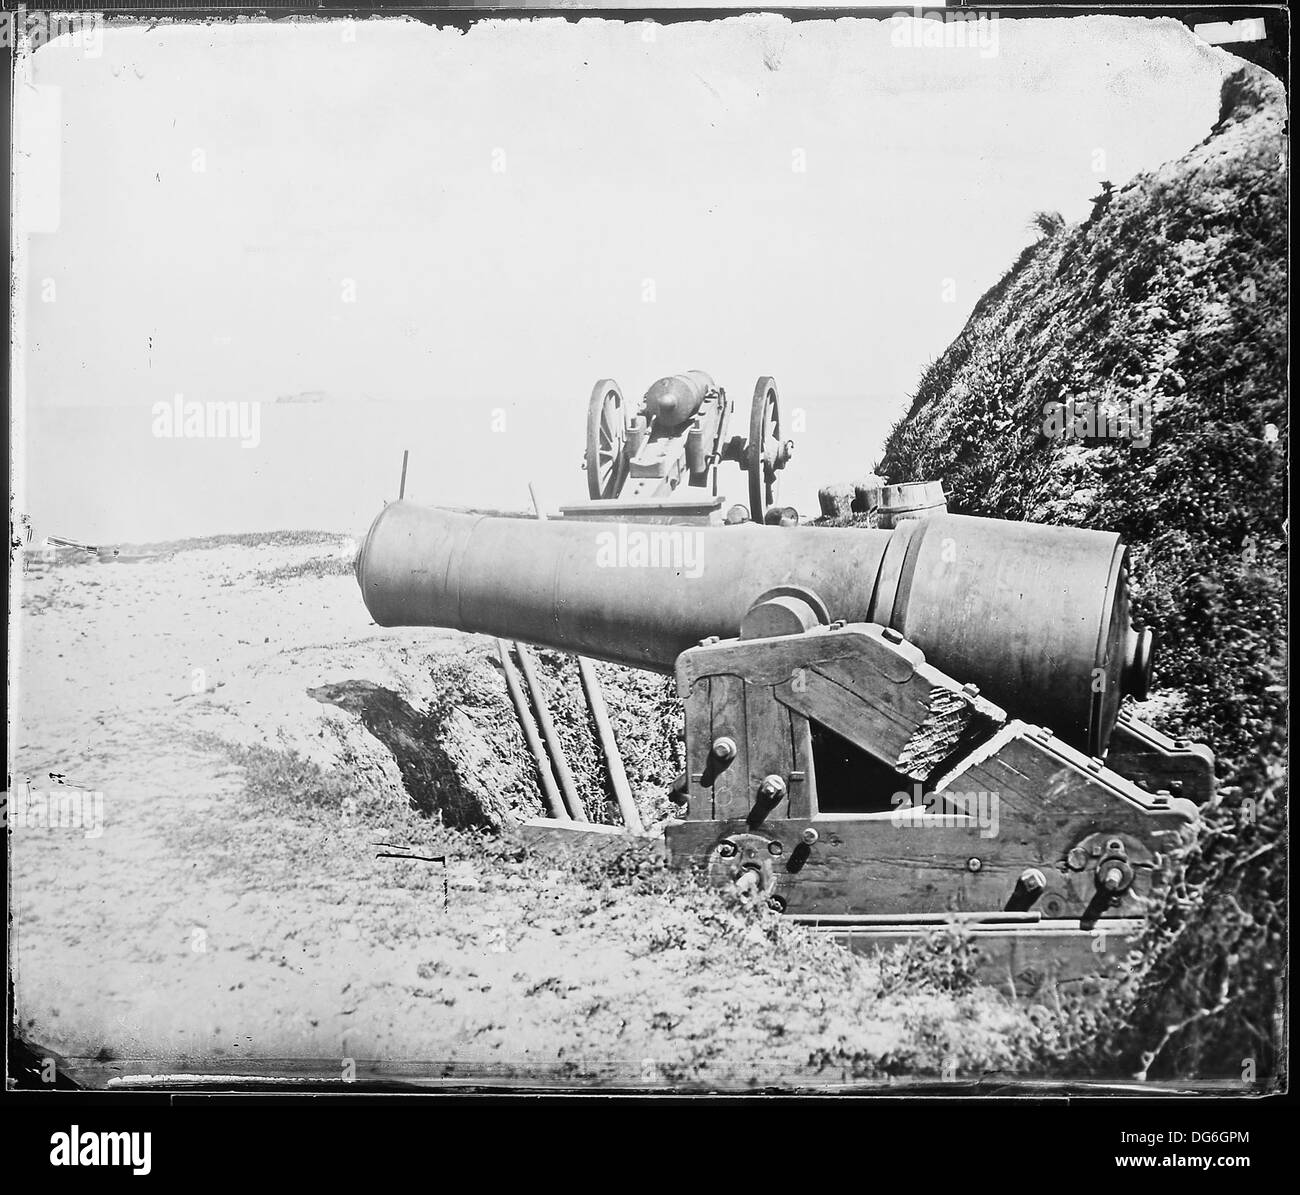 Big Guns near Ft. Sumter, S.C 529958 - Stock Image